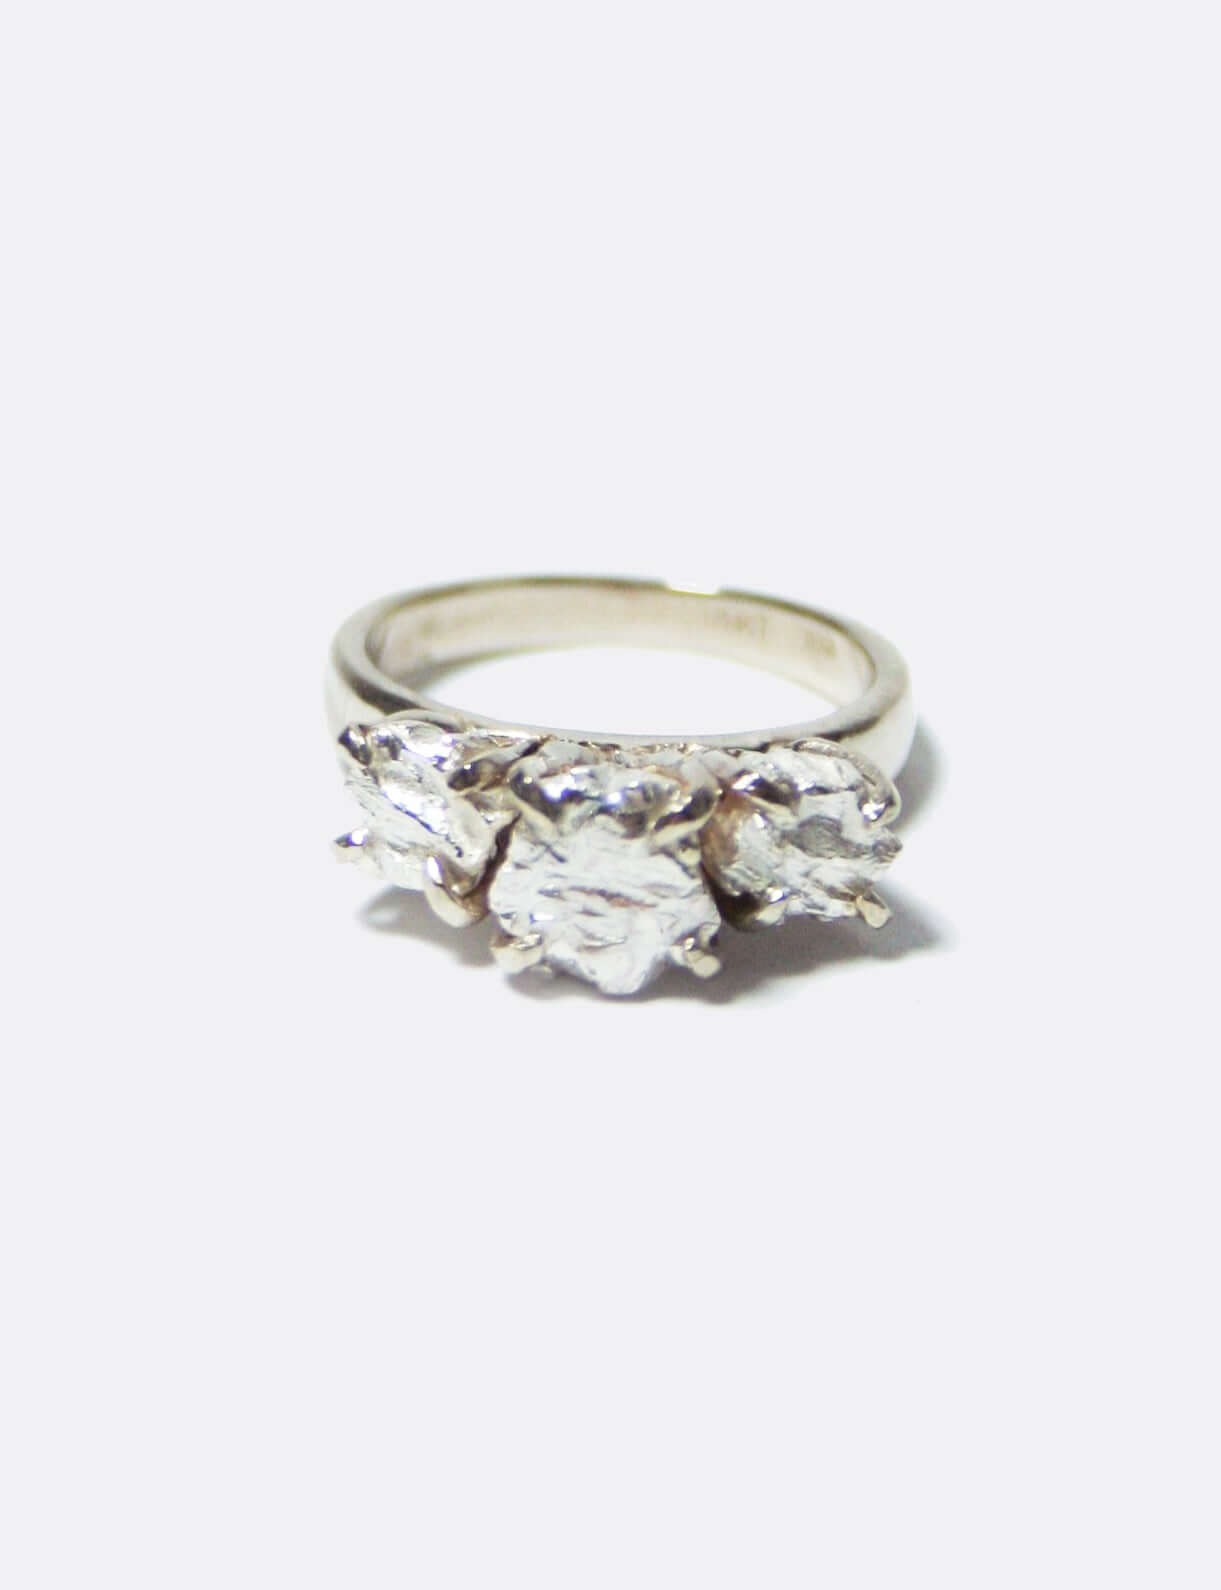 Jagger II Engagement ring Macha Studio, Brooklyn NYC